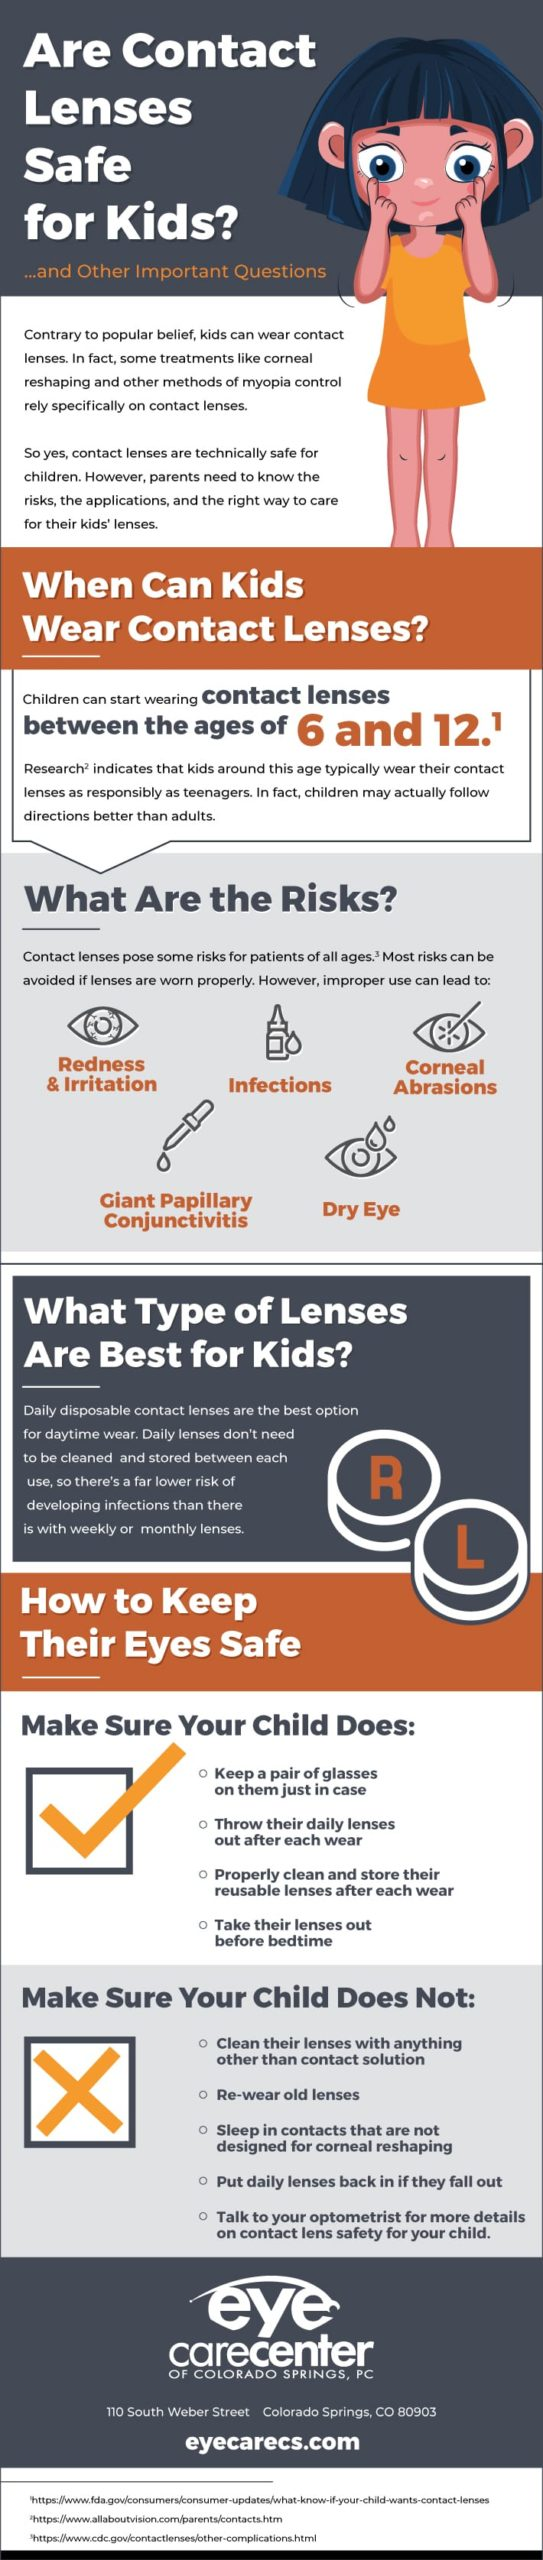 Infographic answering common questions about contact lenses for children